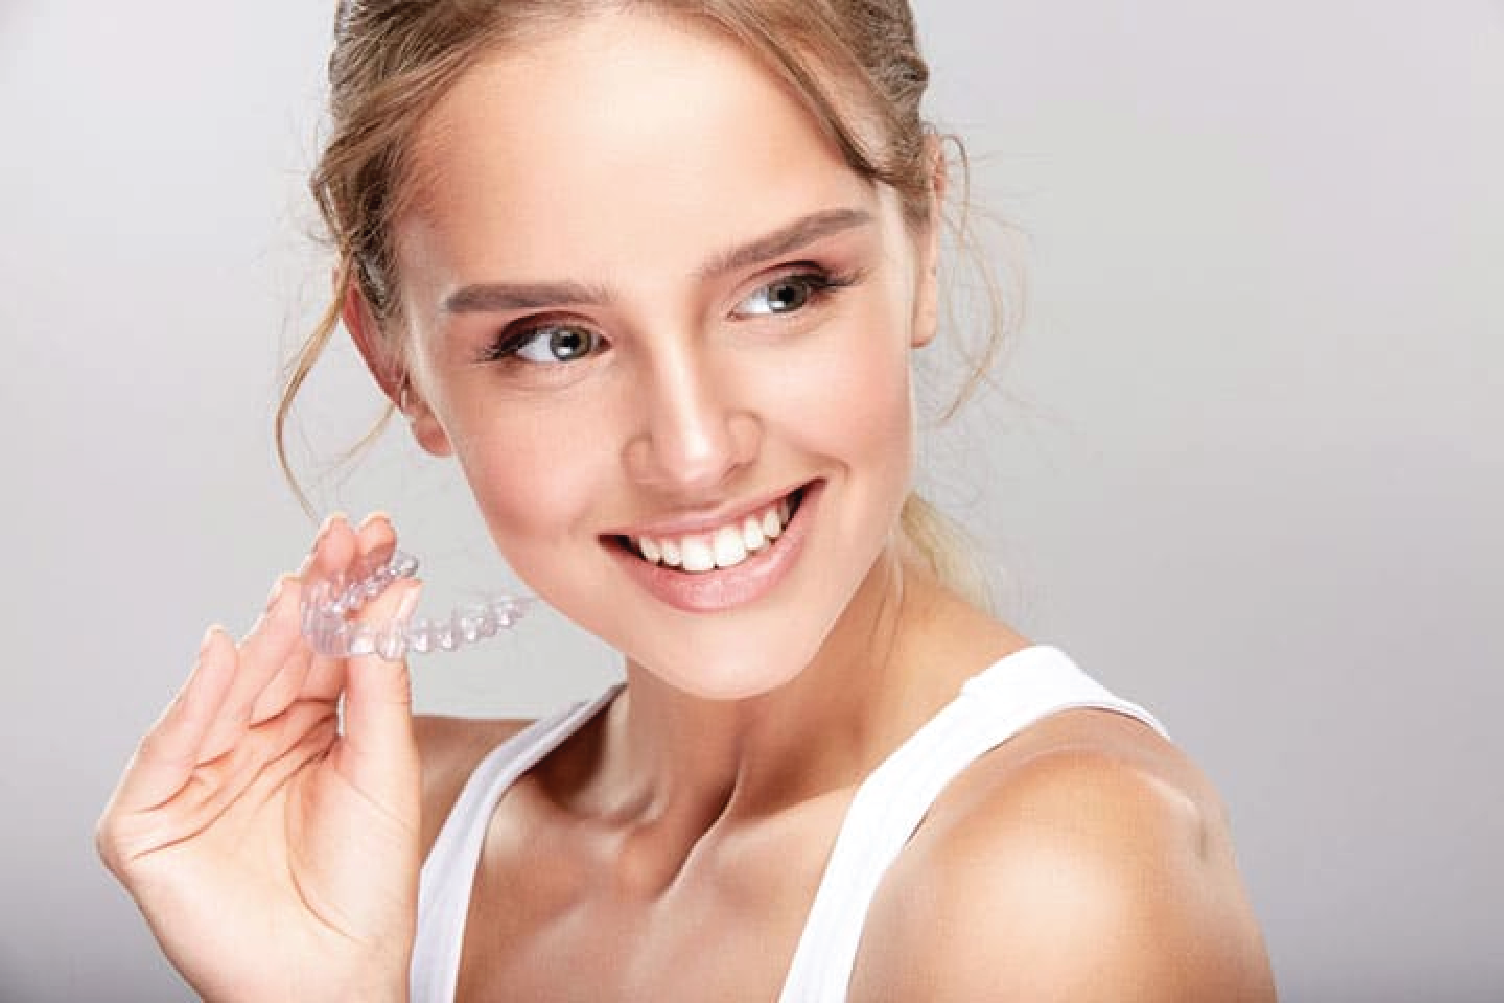 Benefits of Whitesmile Clear Invisible Braces